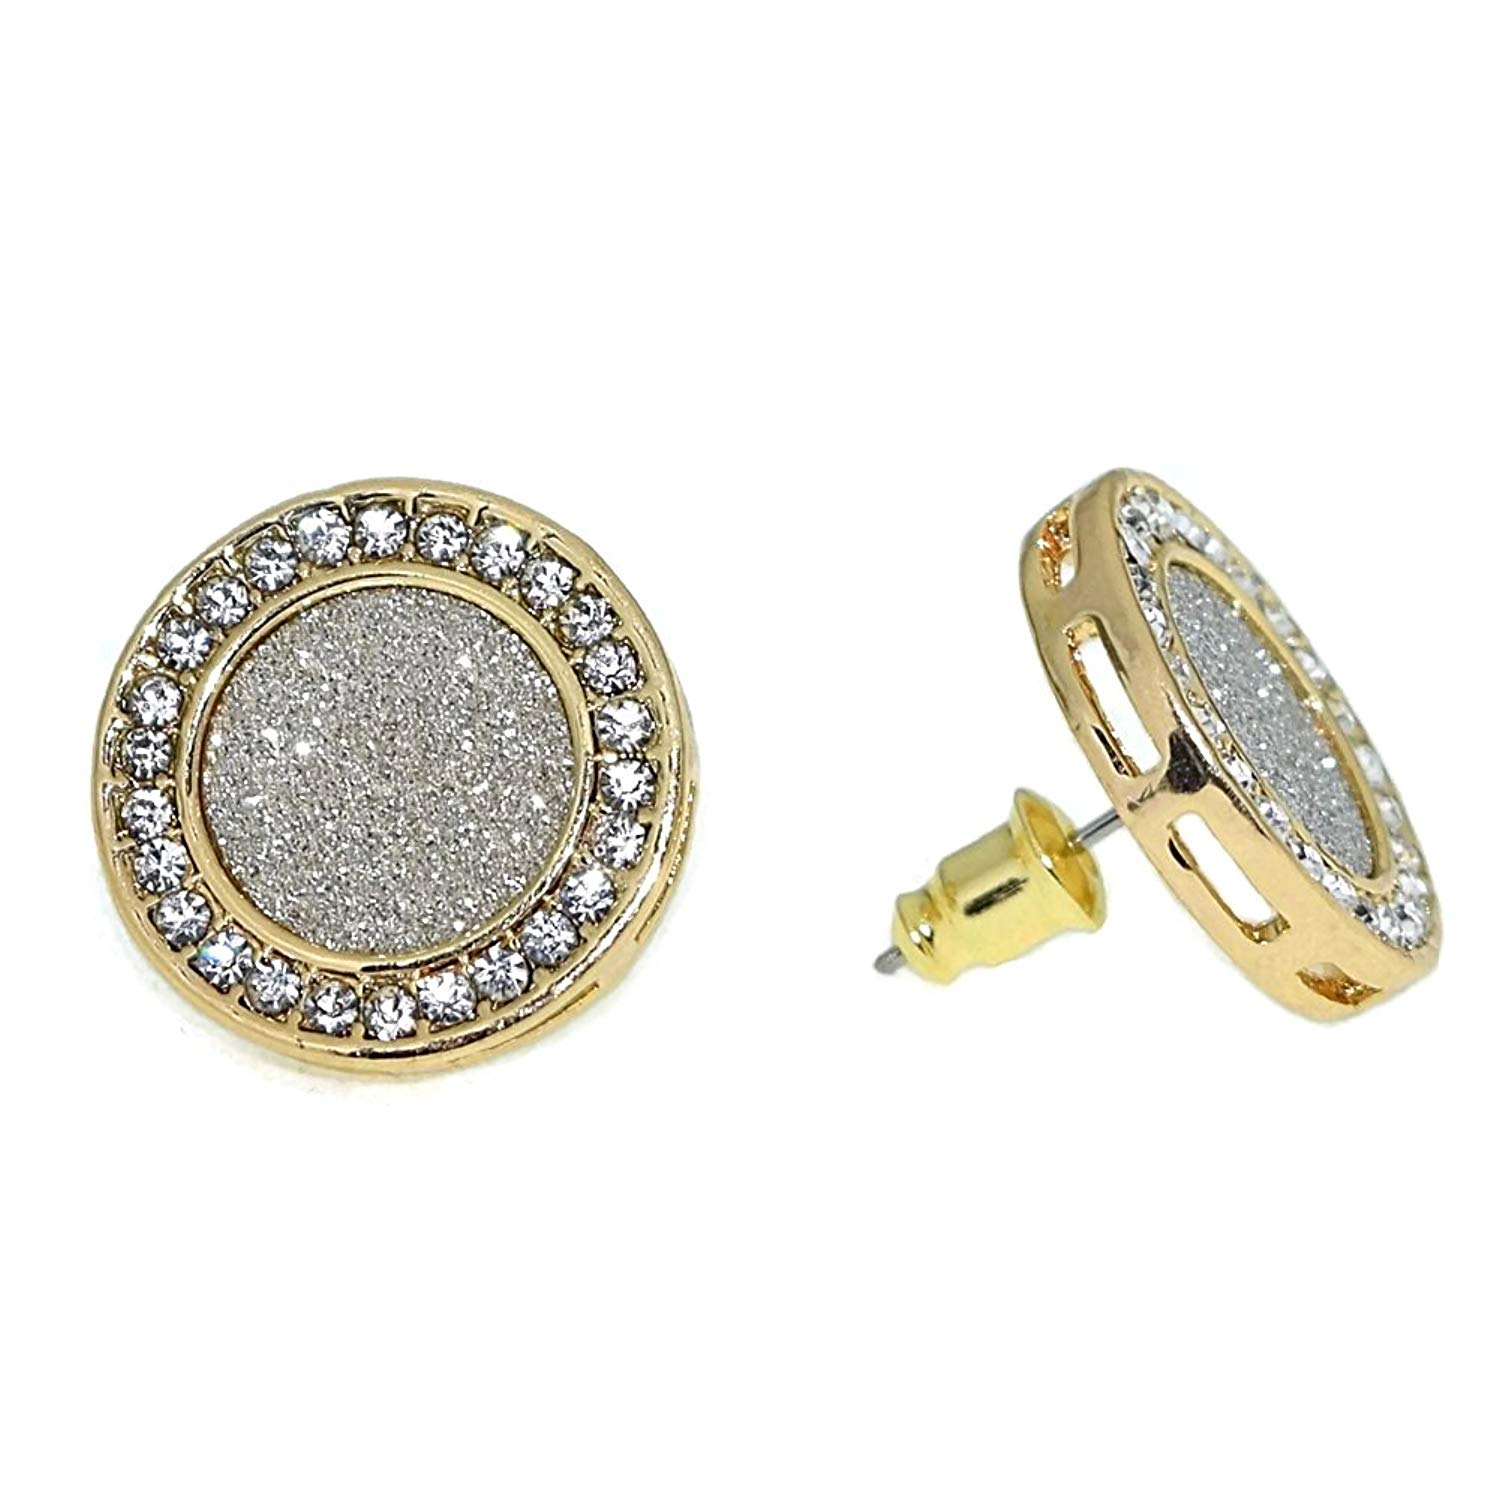 1c2a199d2 Get Quotations · HUGE 18mm Round Micro Pave Yellow Gold Tone Hip Hop Bling  Big Circle Iced-Out